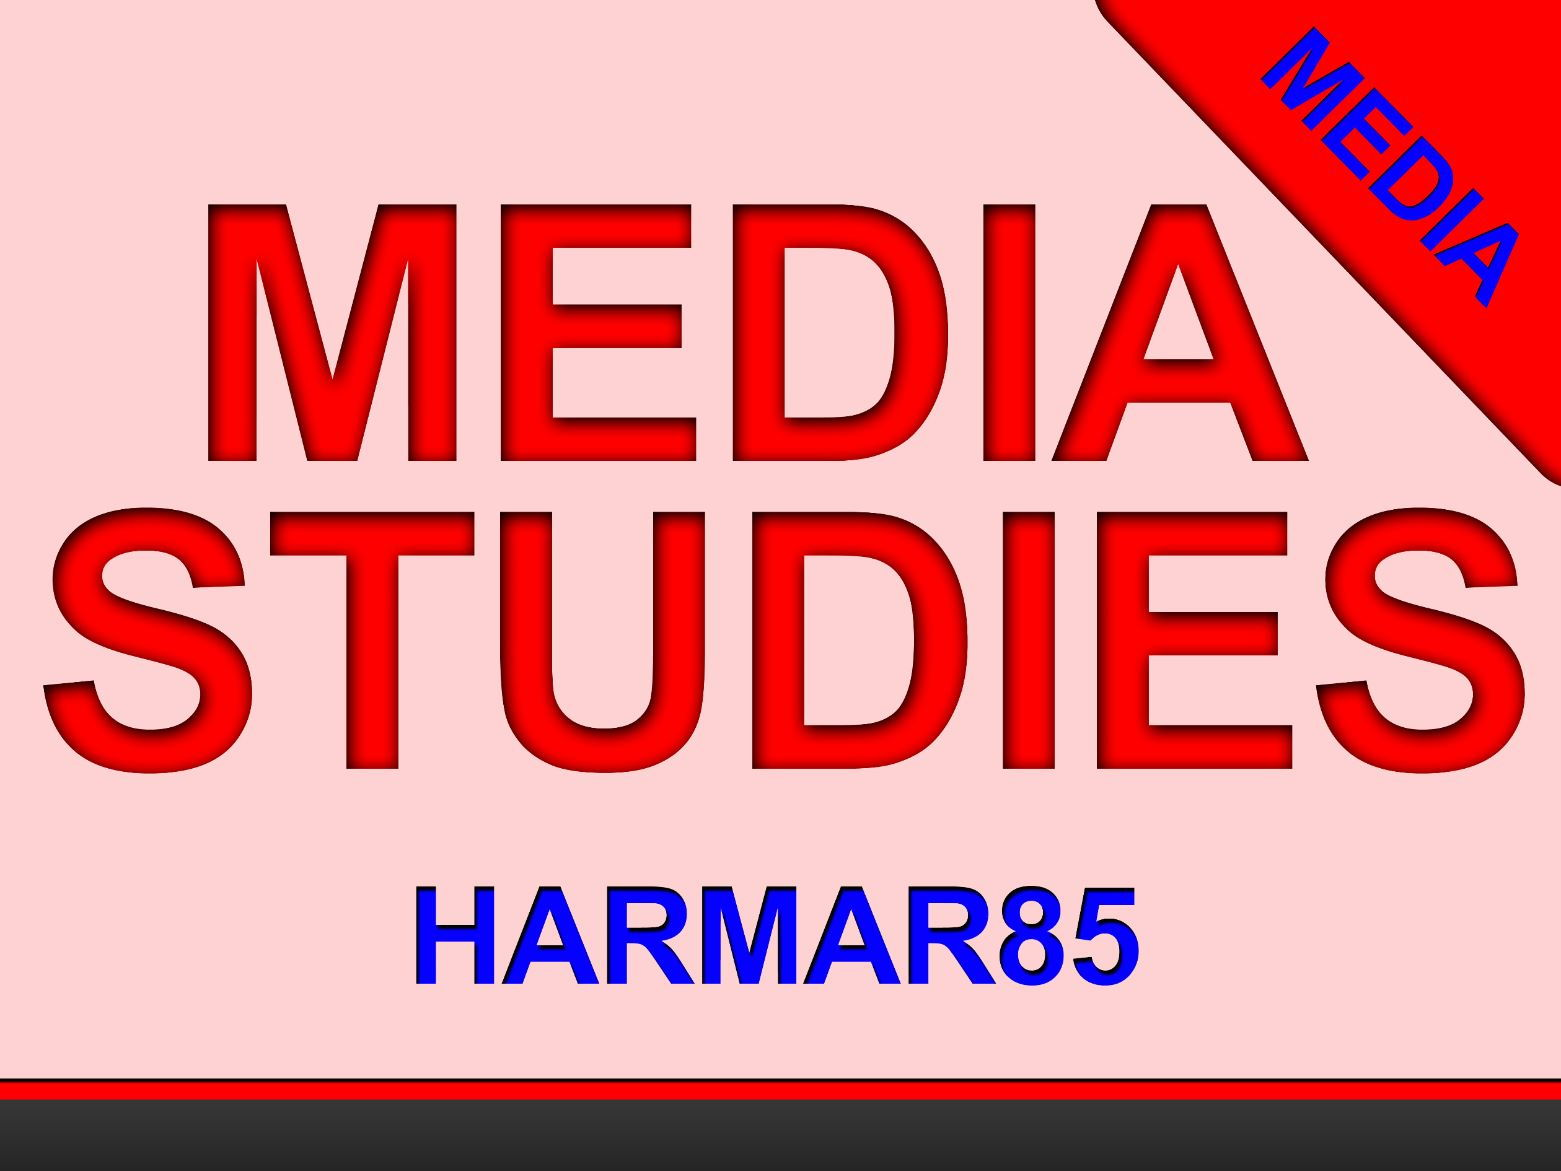 Media Audiences for A-Level and GCSE